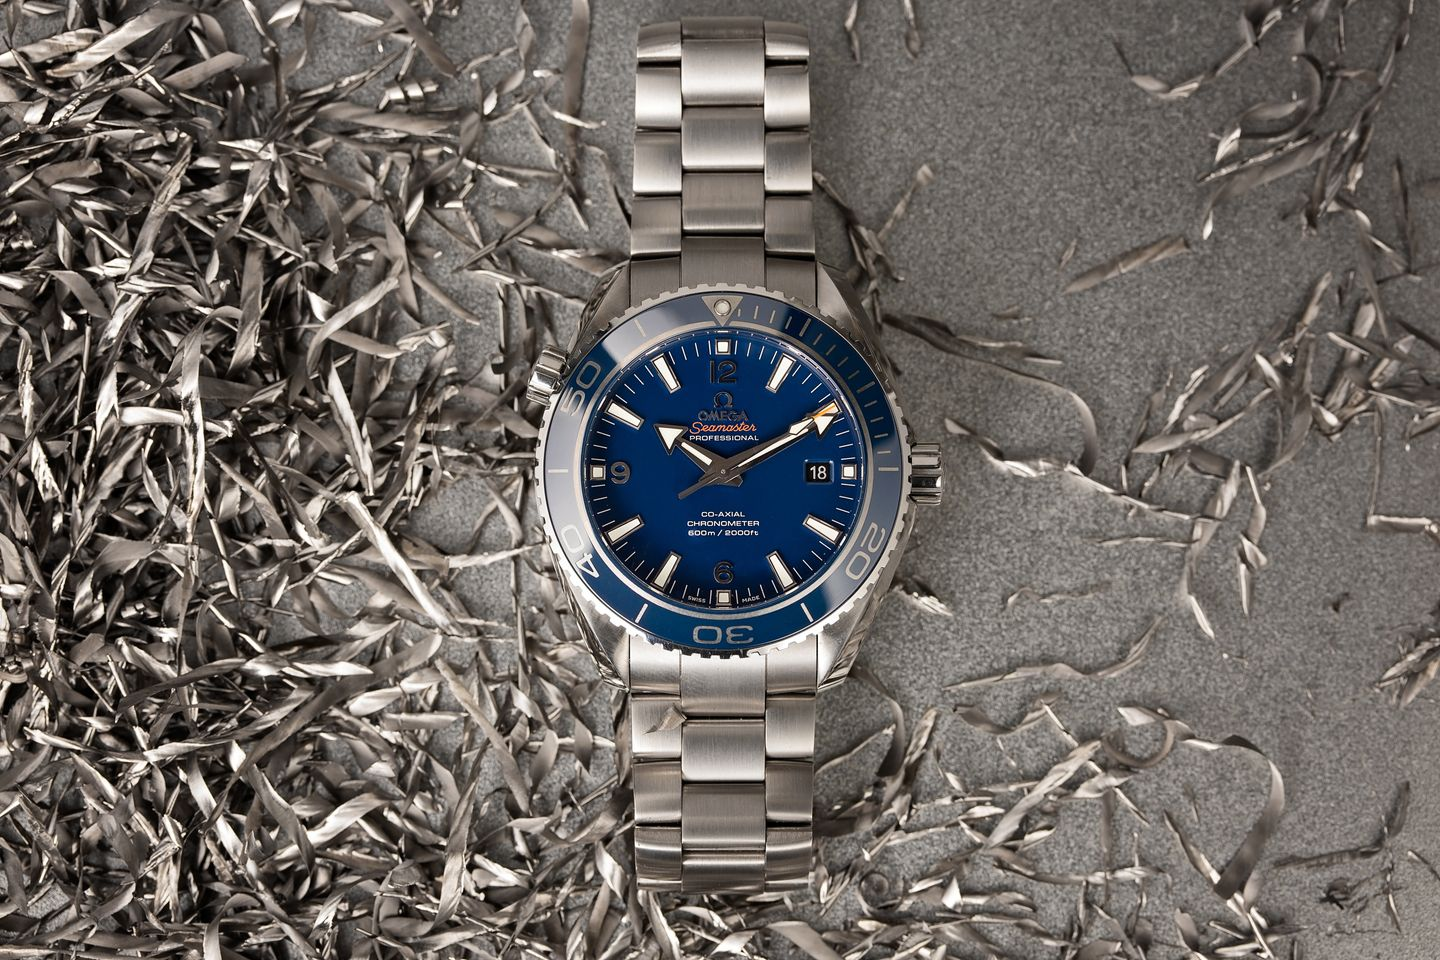 Omega Seamaster Planet Ocean Titanium - understand collection